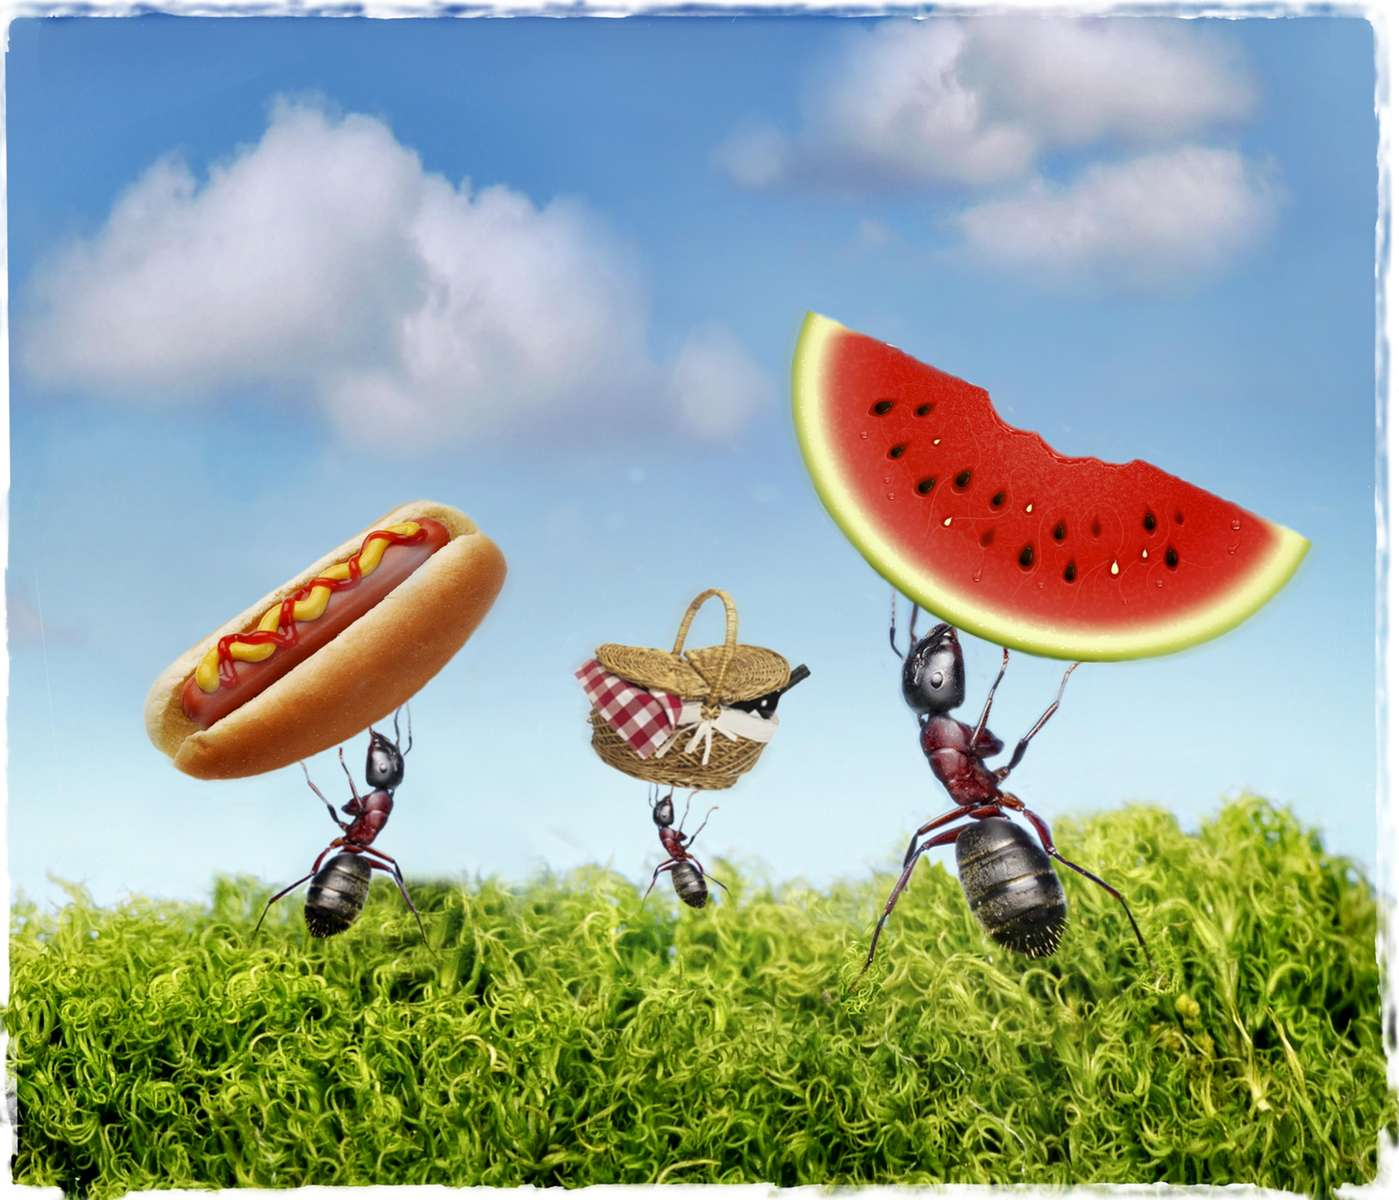 A photo illustration on a story about {quote}Antsy to find the perfect picnic spot.{quote}